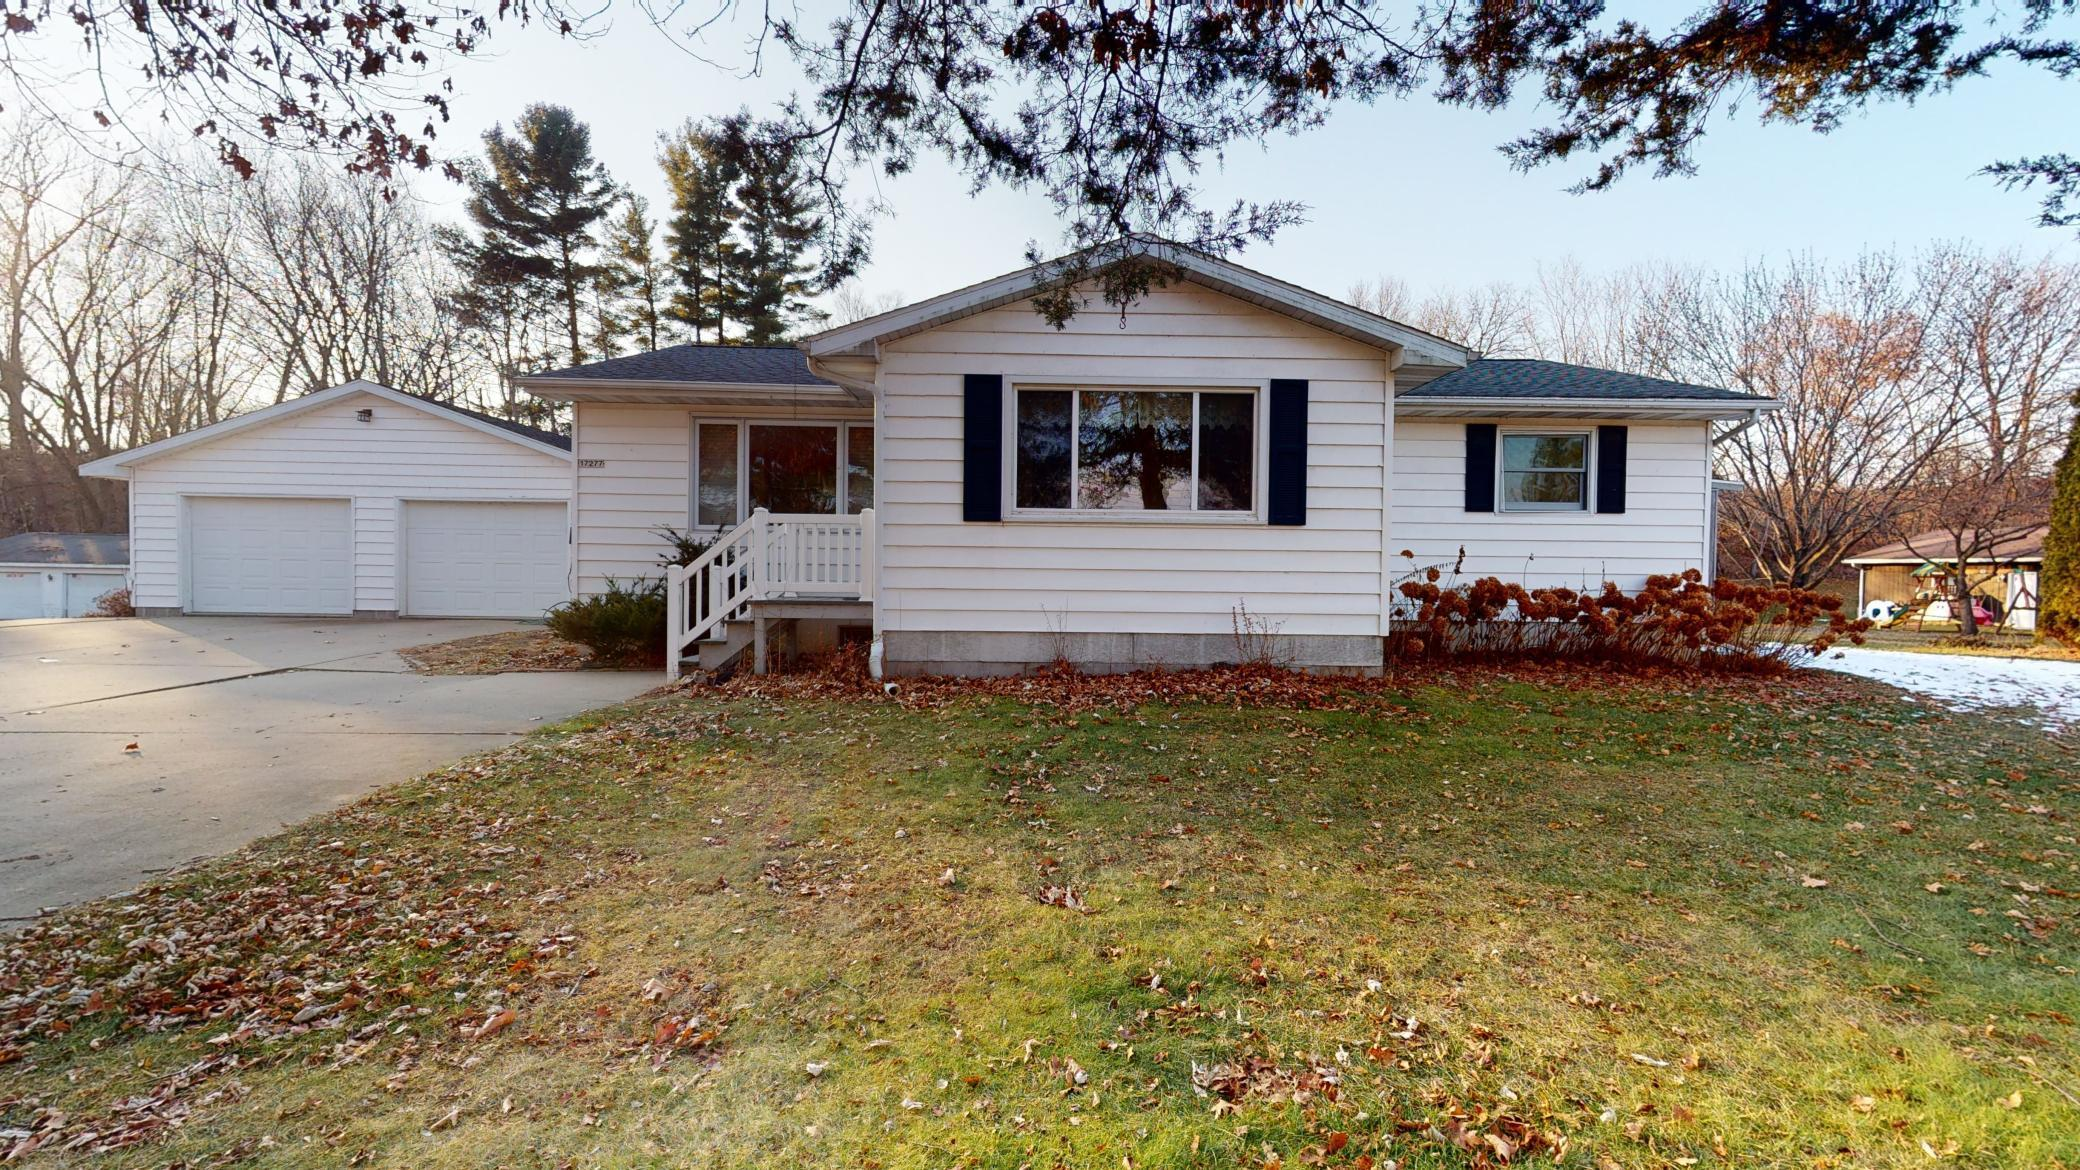 17277 N 4th Street Property Photo - Galesville, WI real estate listing